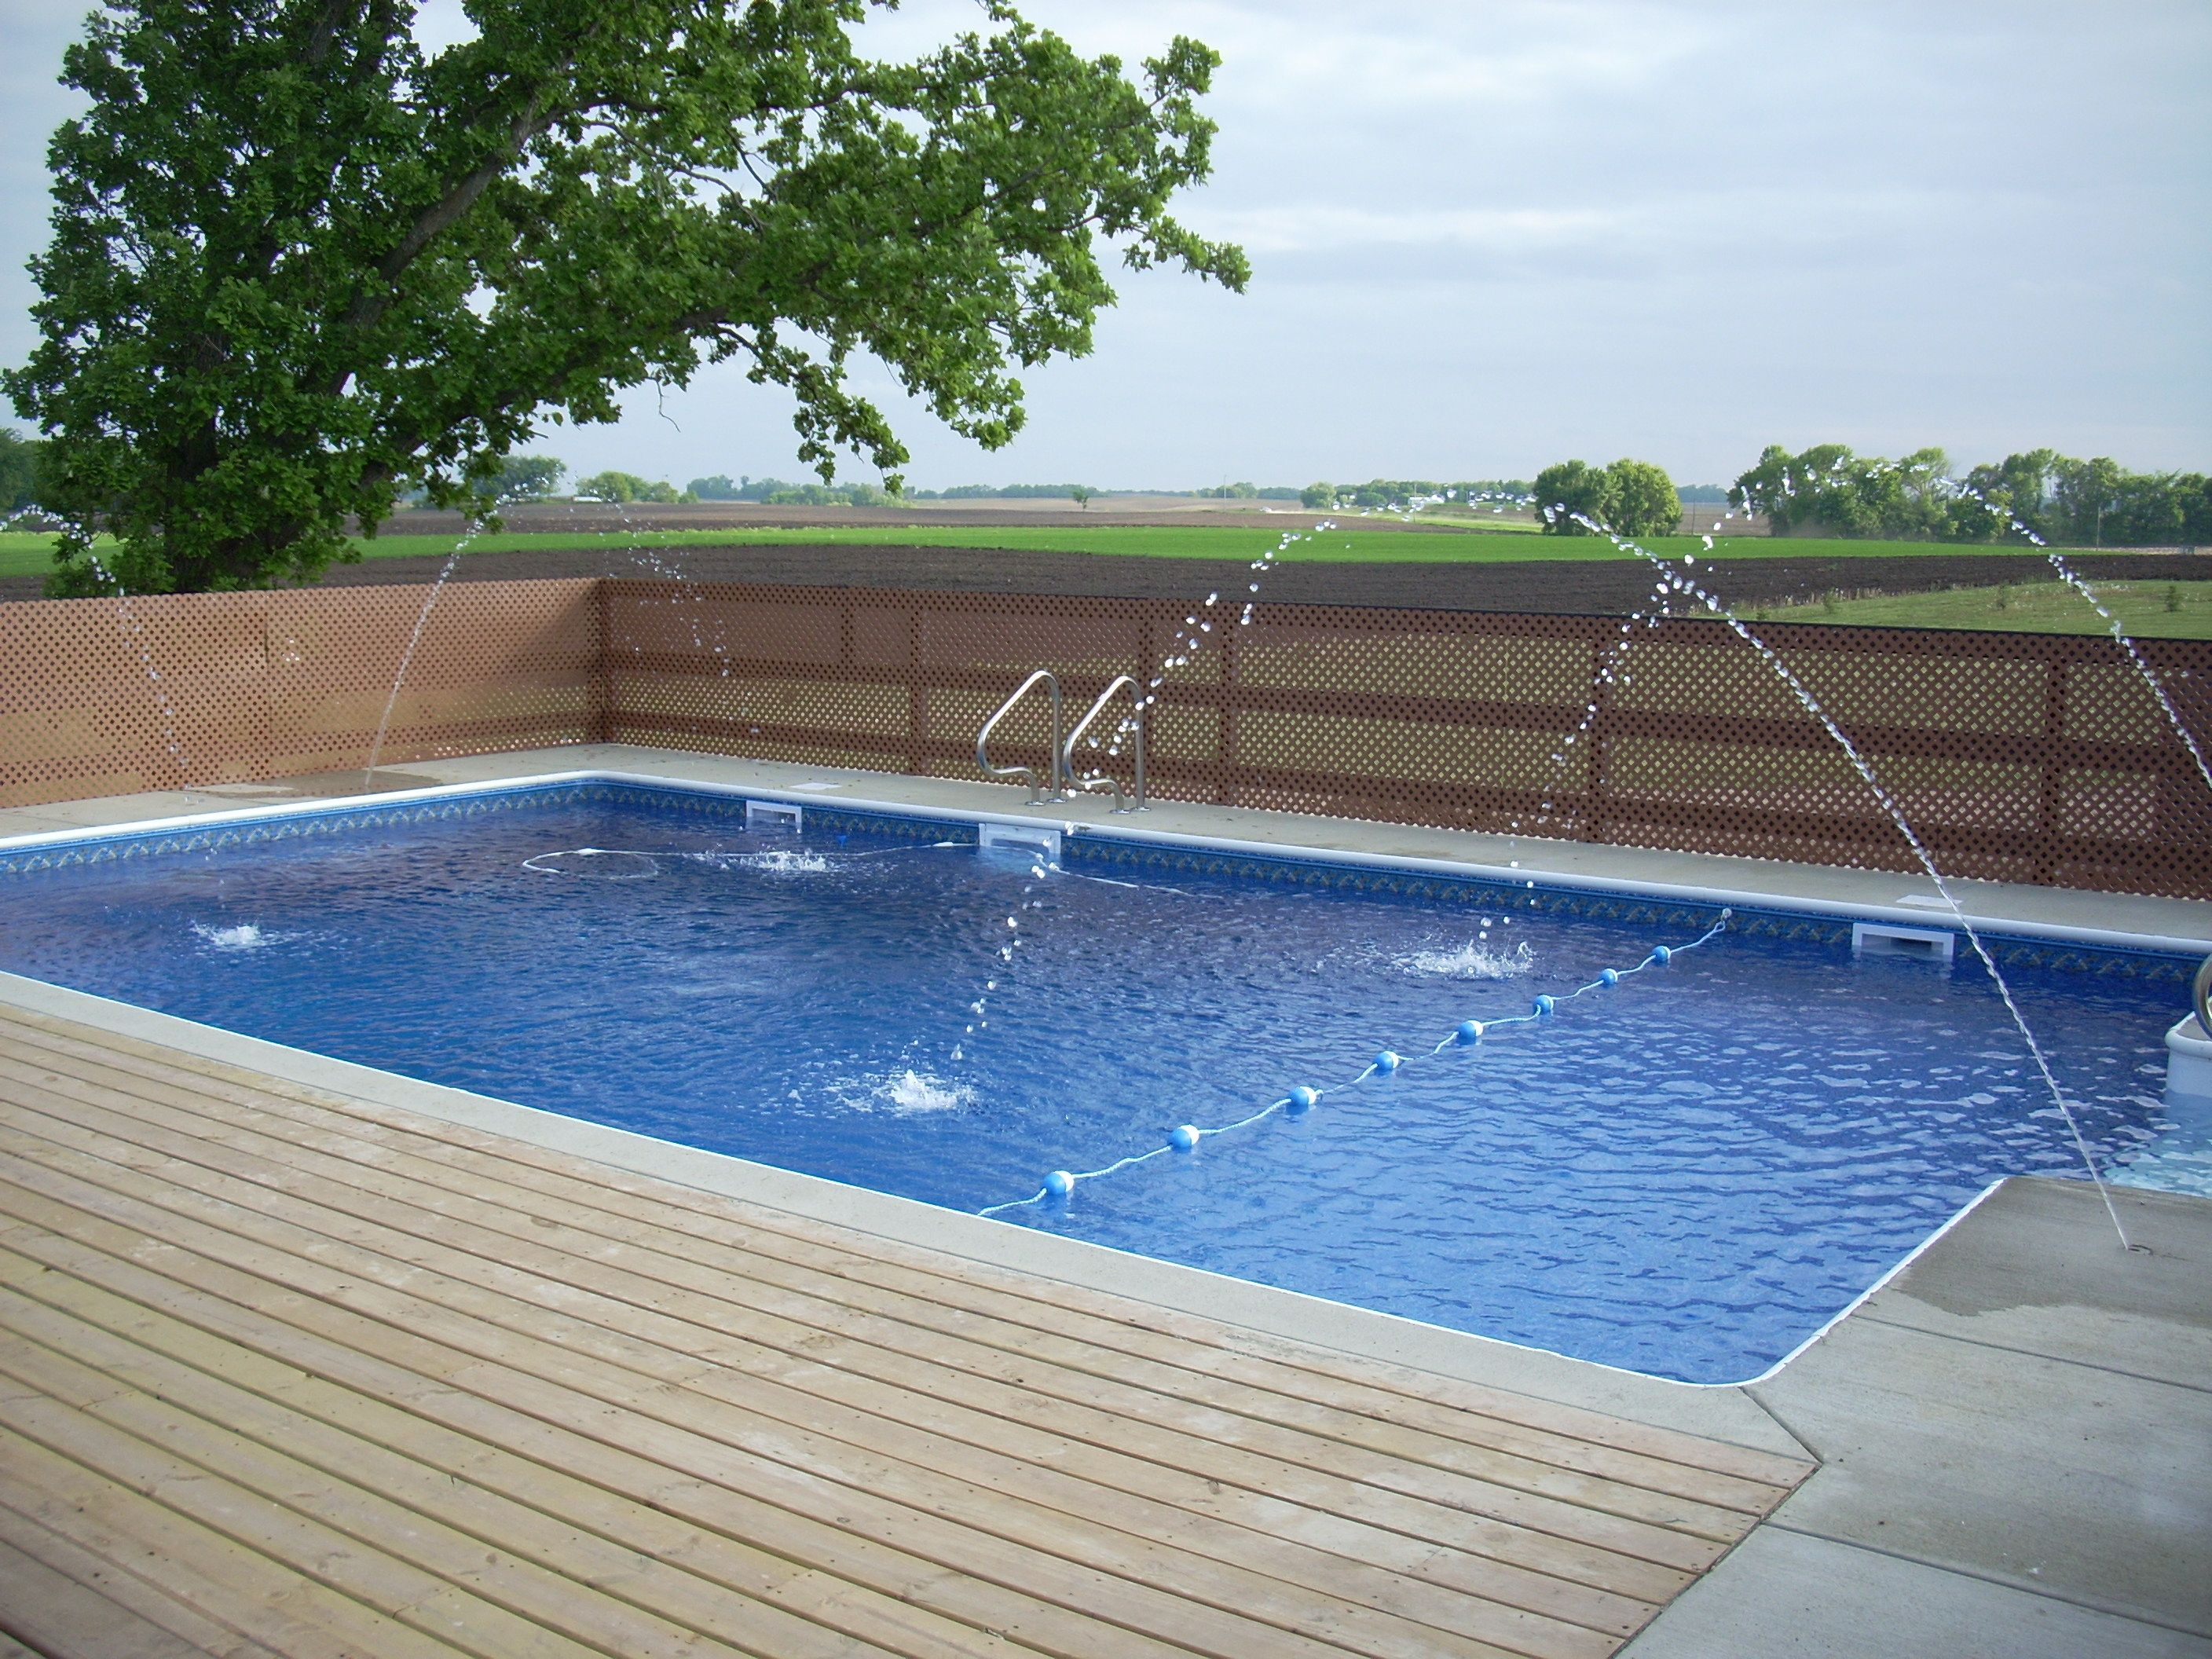 Inground Pool Surround Ideas semi inground pool with deep end Inground Swimming Pool Installed By Tc Pools When Im Older I Want To Have